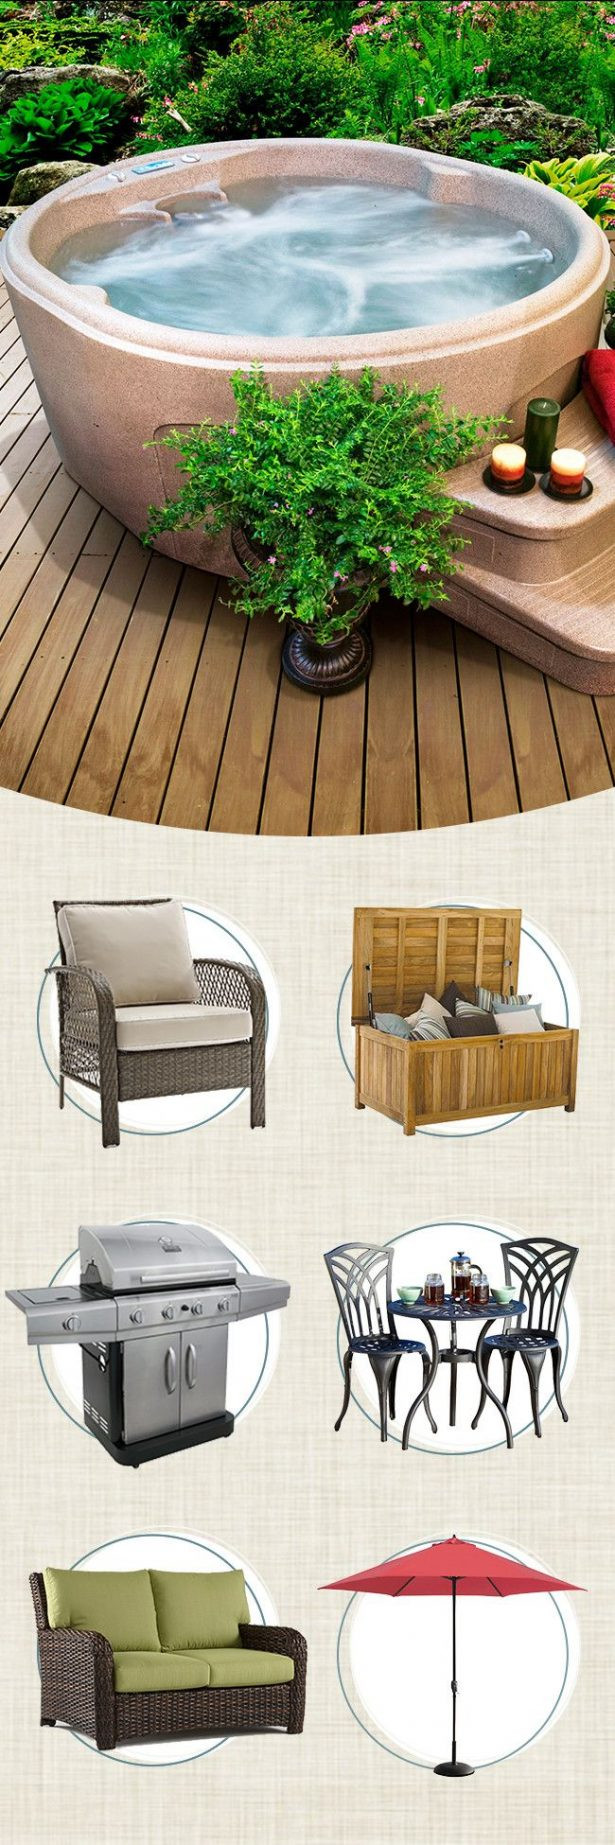 Best ideas about Patio Furniture Deals . Save or Pin Outdoor Furniture Deals Home Design Decorating Oliviasz Now.